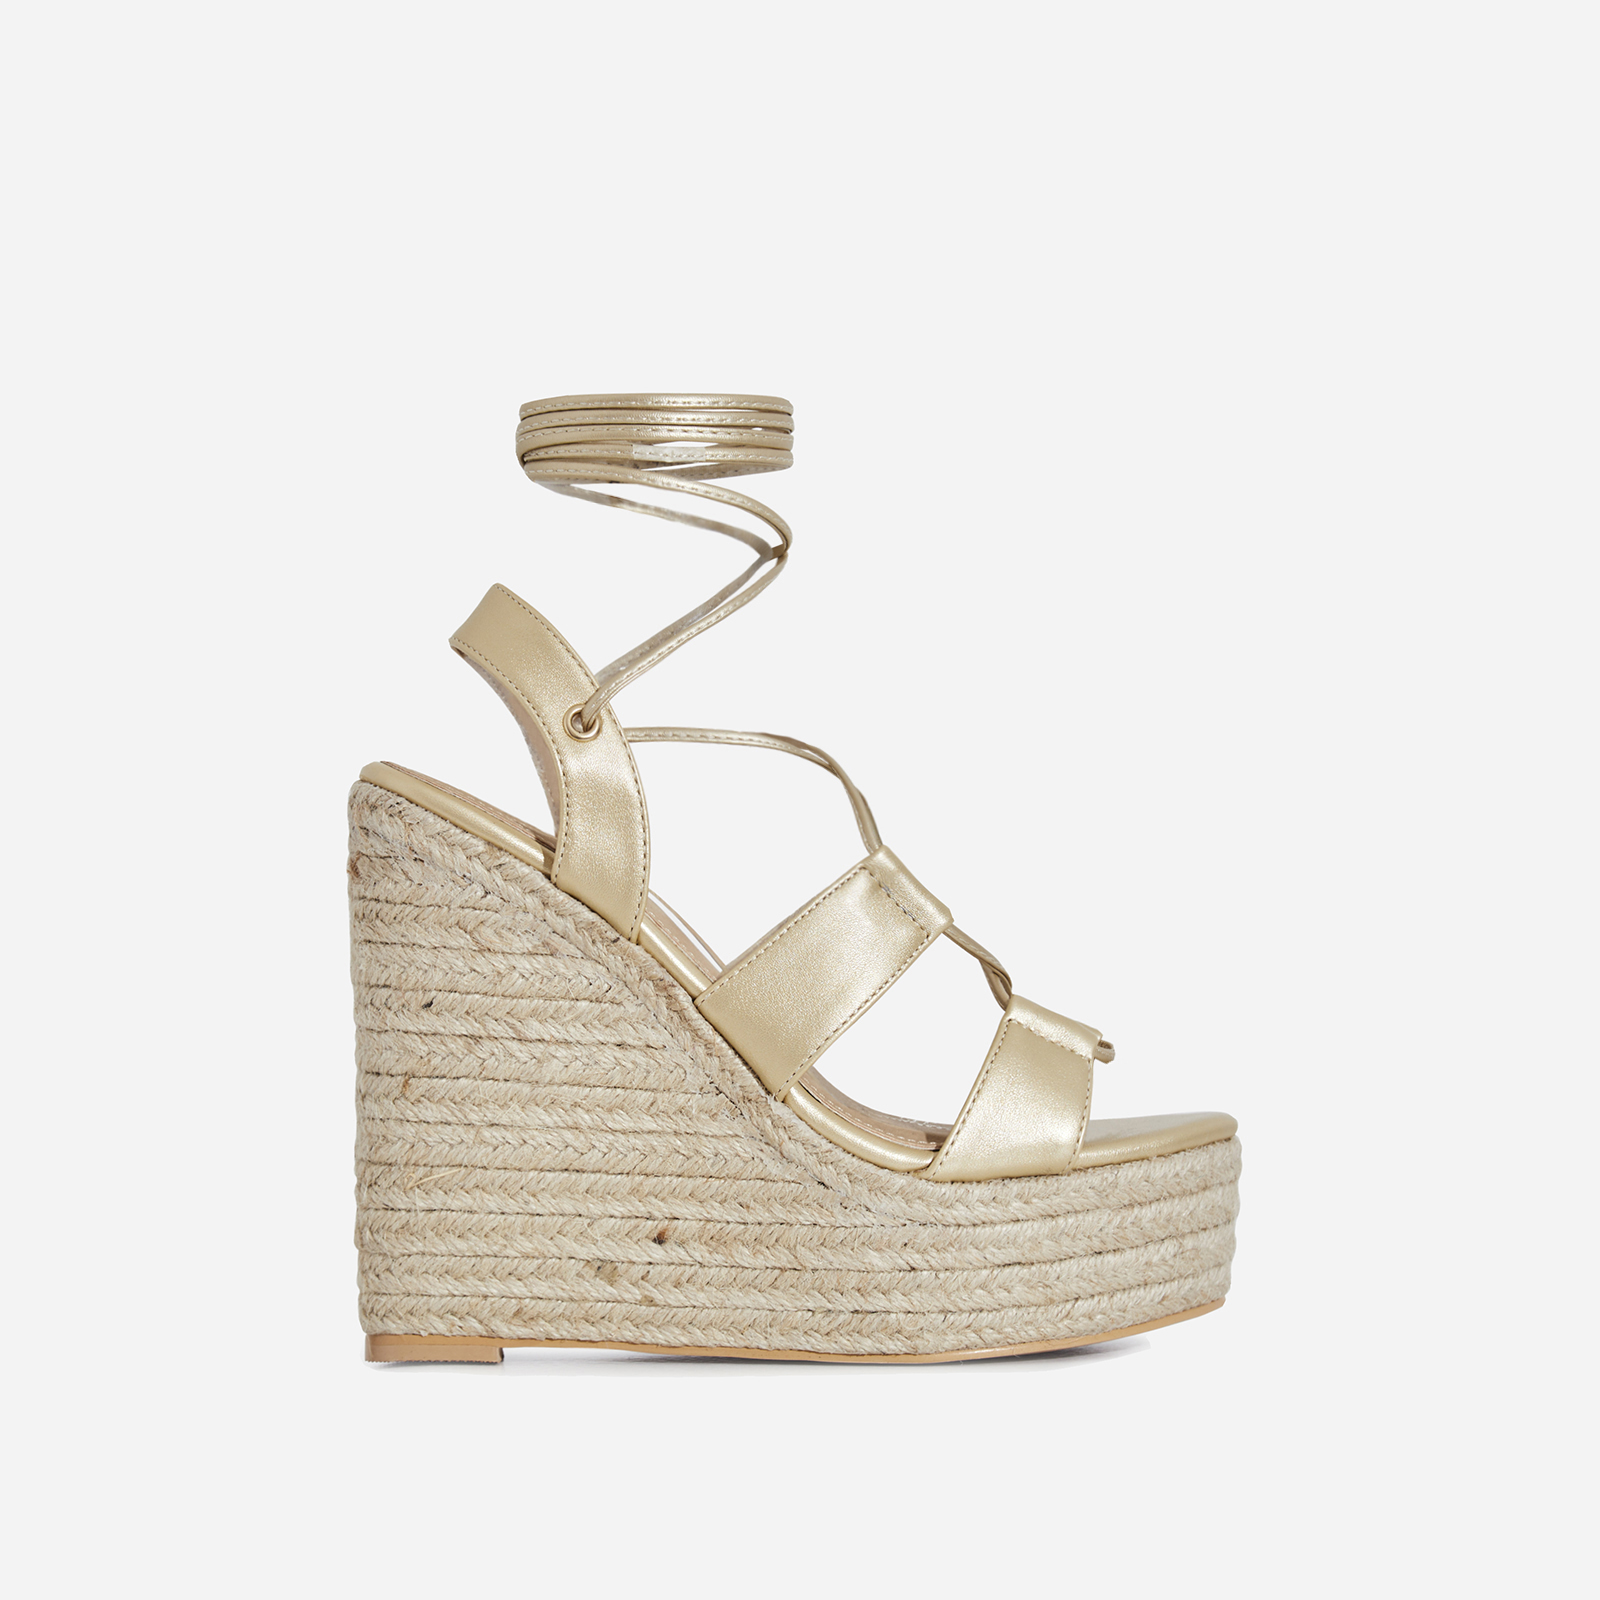 Emelia Lace Up Espadrille Wedge Platform Heel In Gold Faux Leather